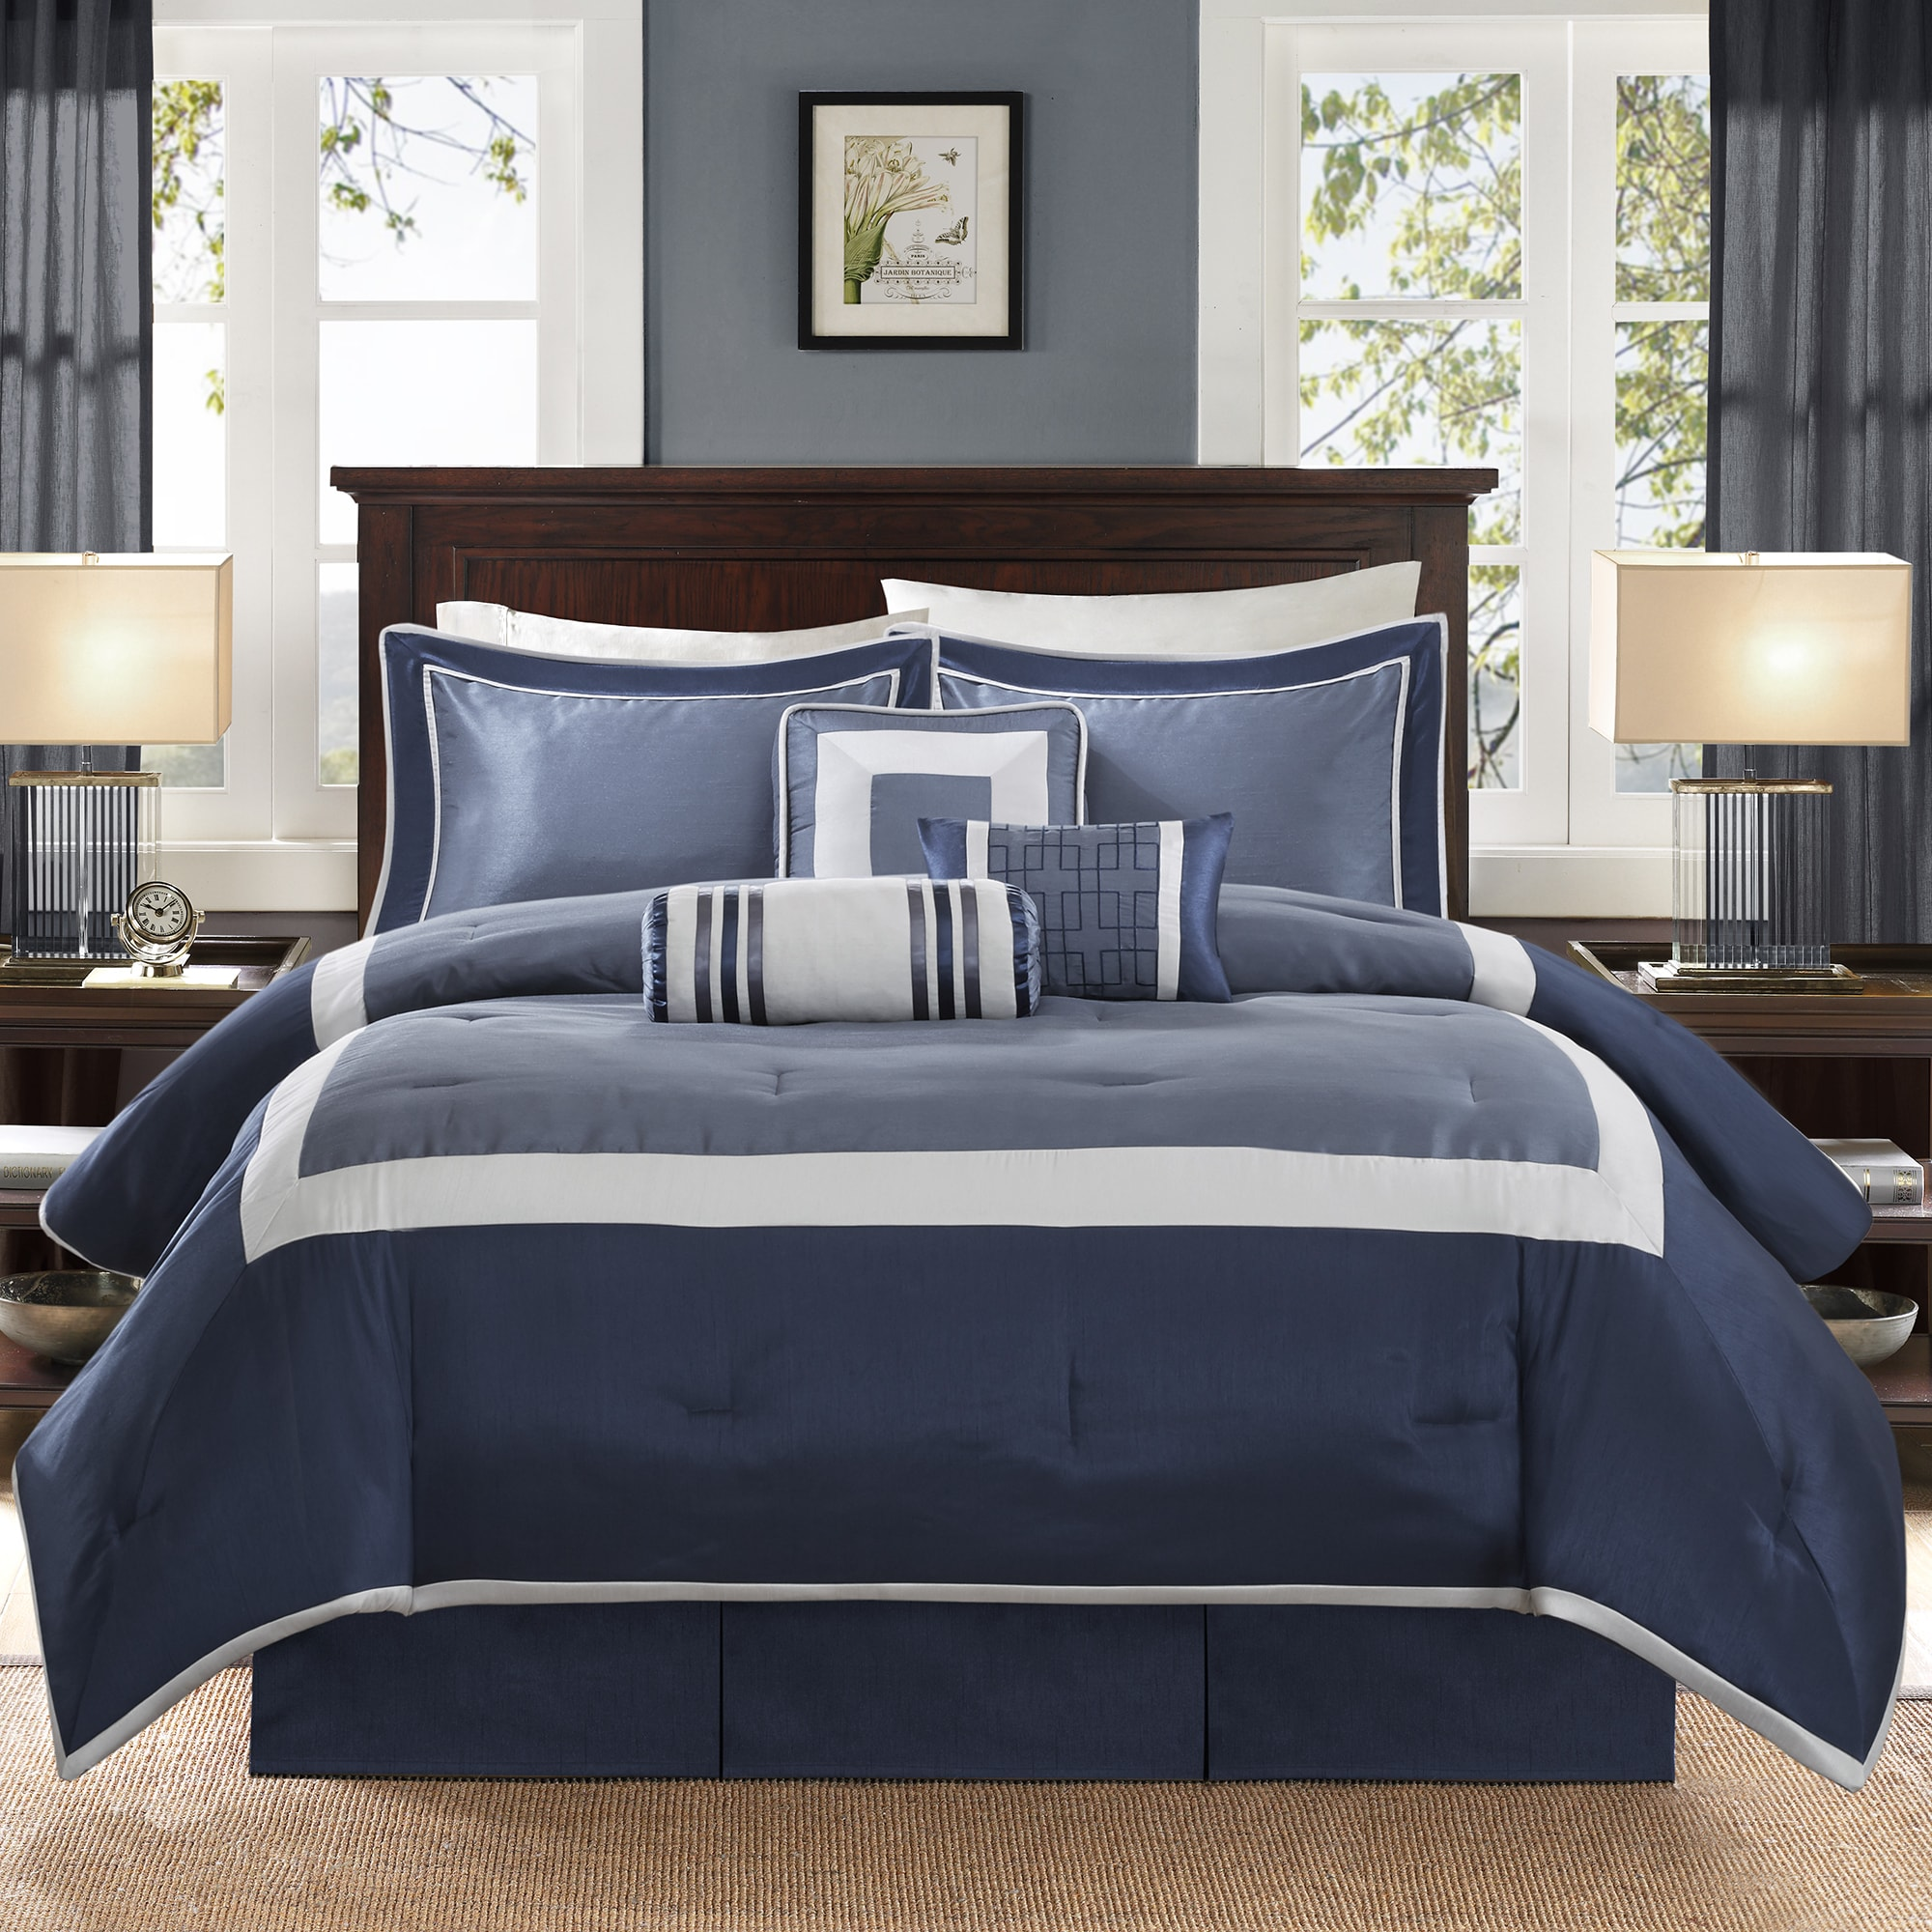 on shipping color product martex overstock orders comforter solid reversible bath bedding over free